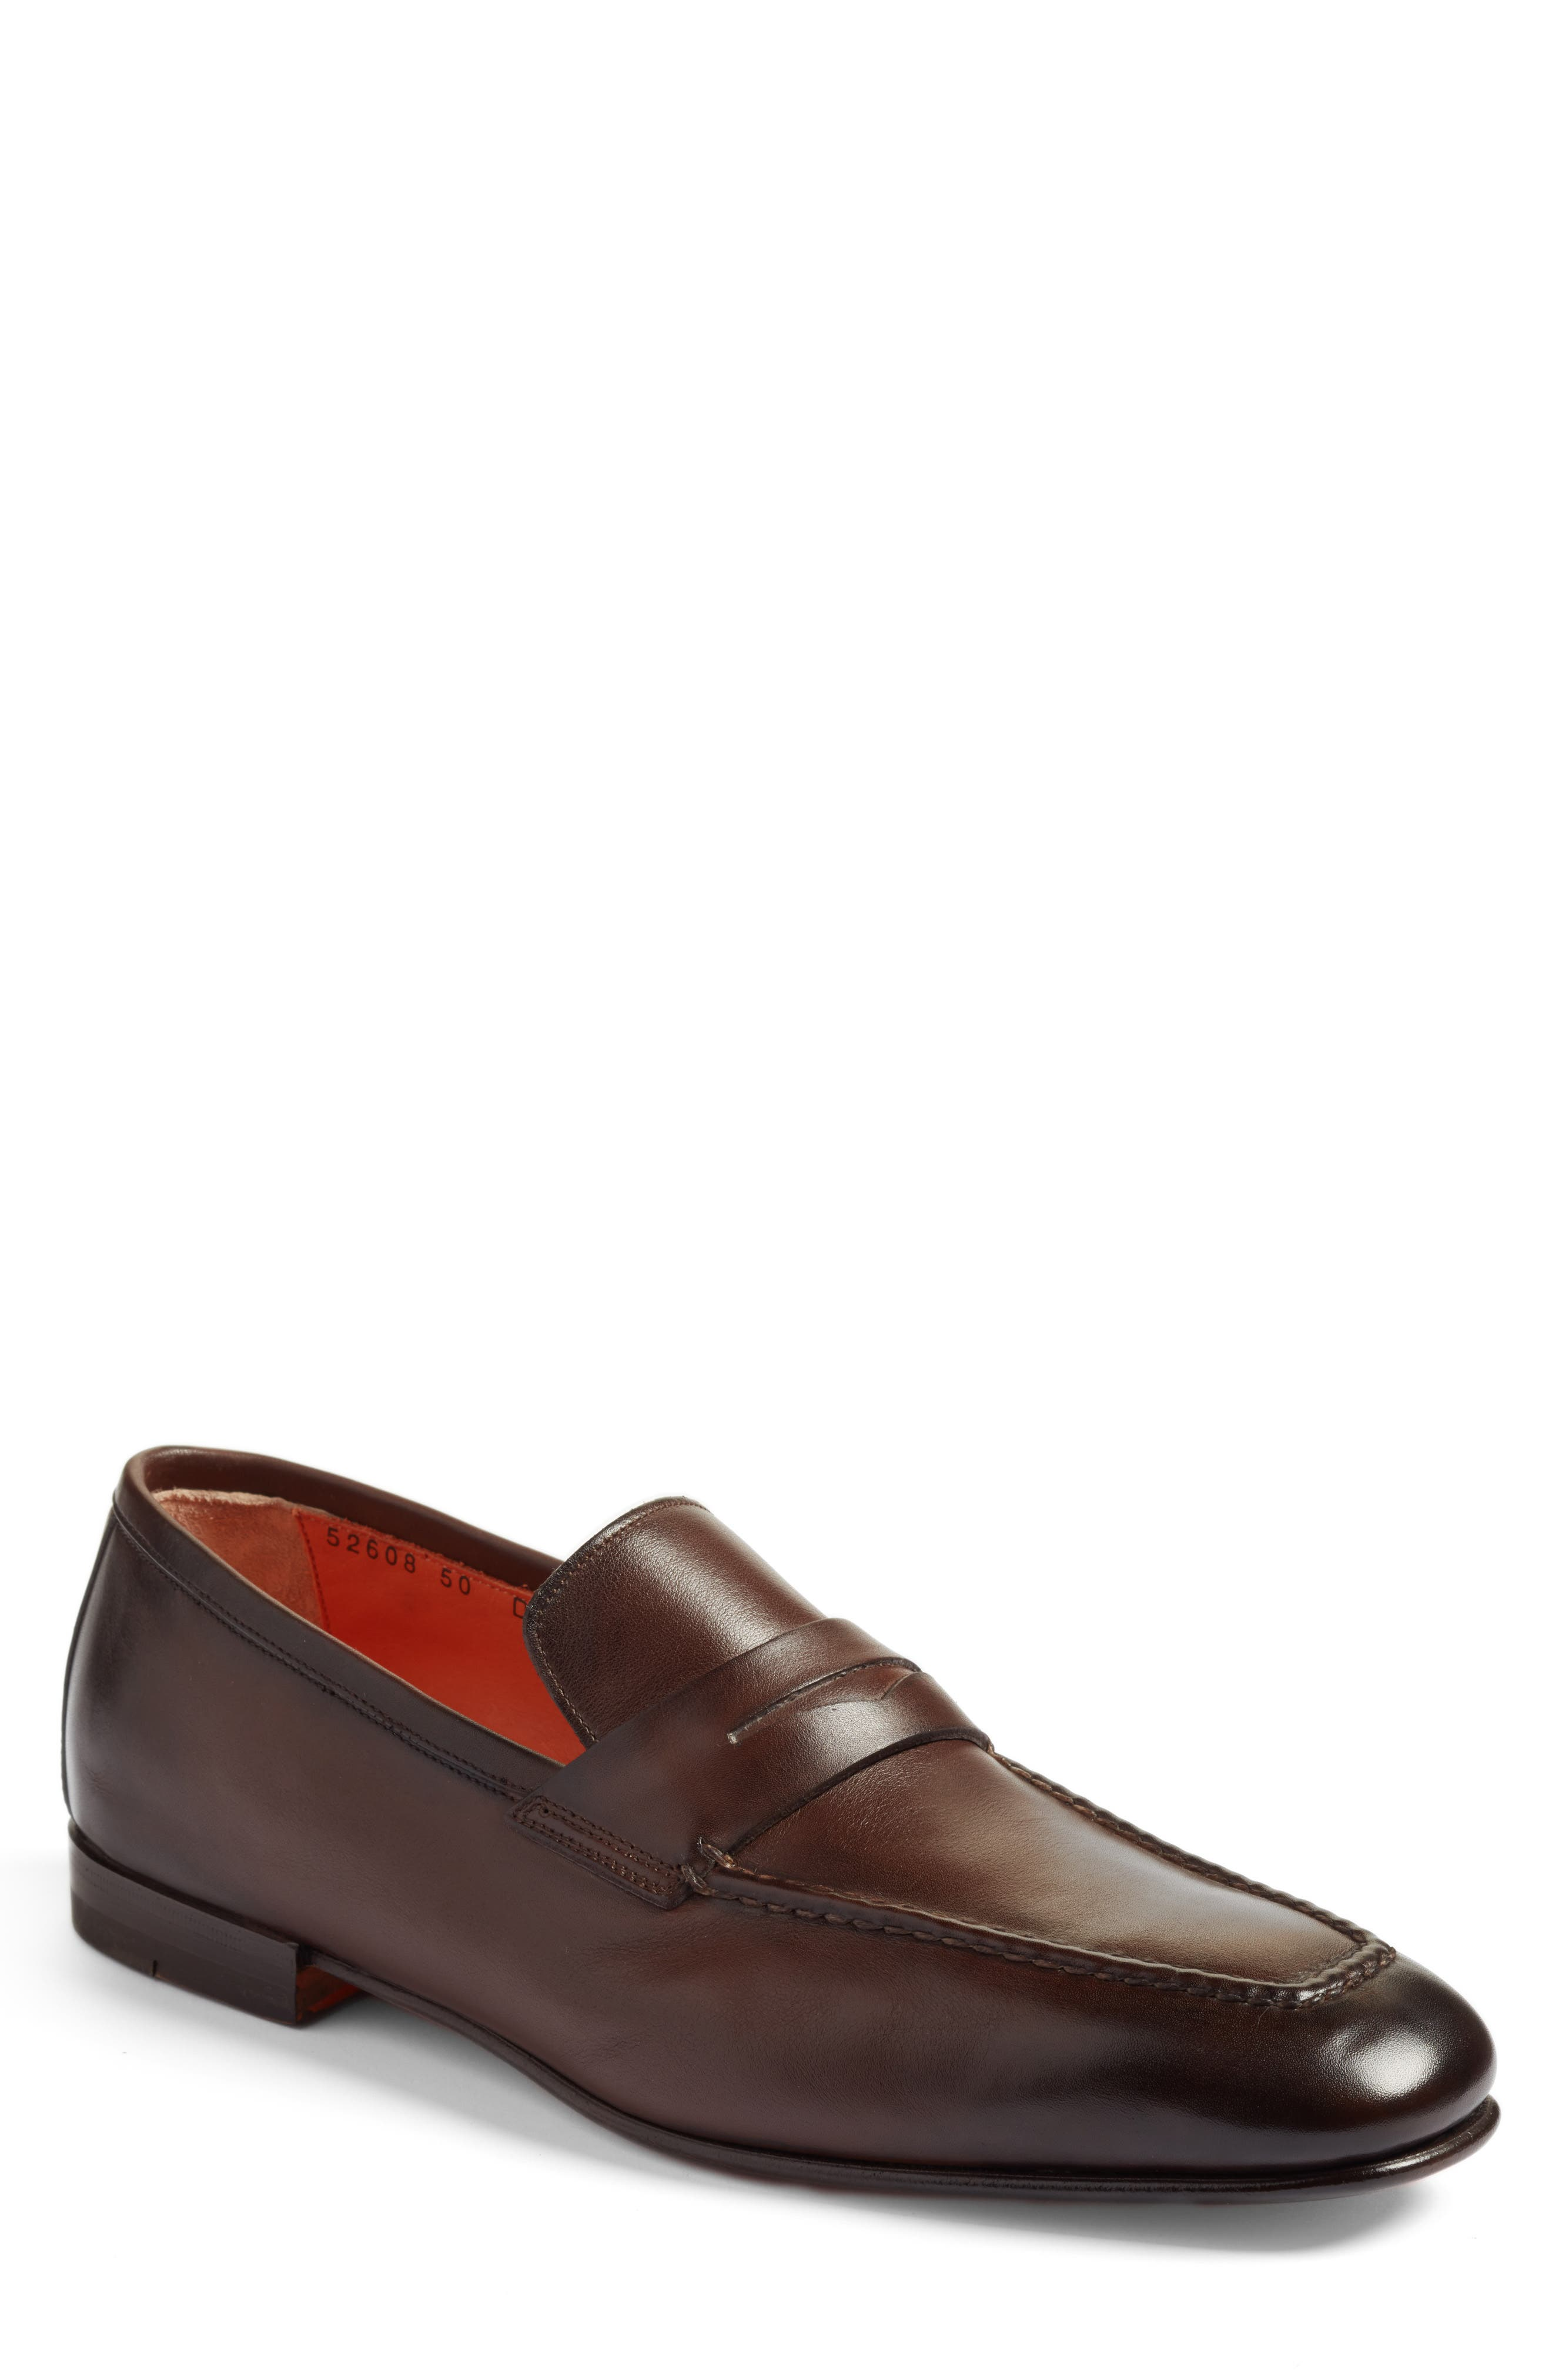 SANTONI, Fox Packable Penny Loafer, Main thumbnail 1, color, DARK BROWN LEATHER